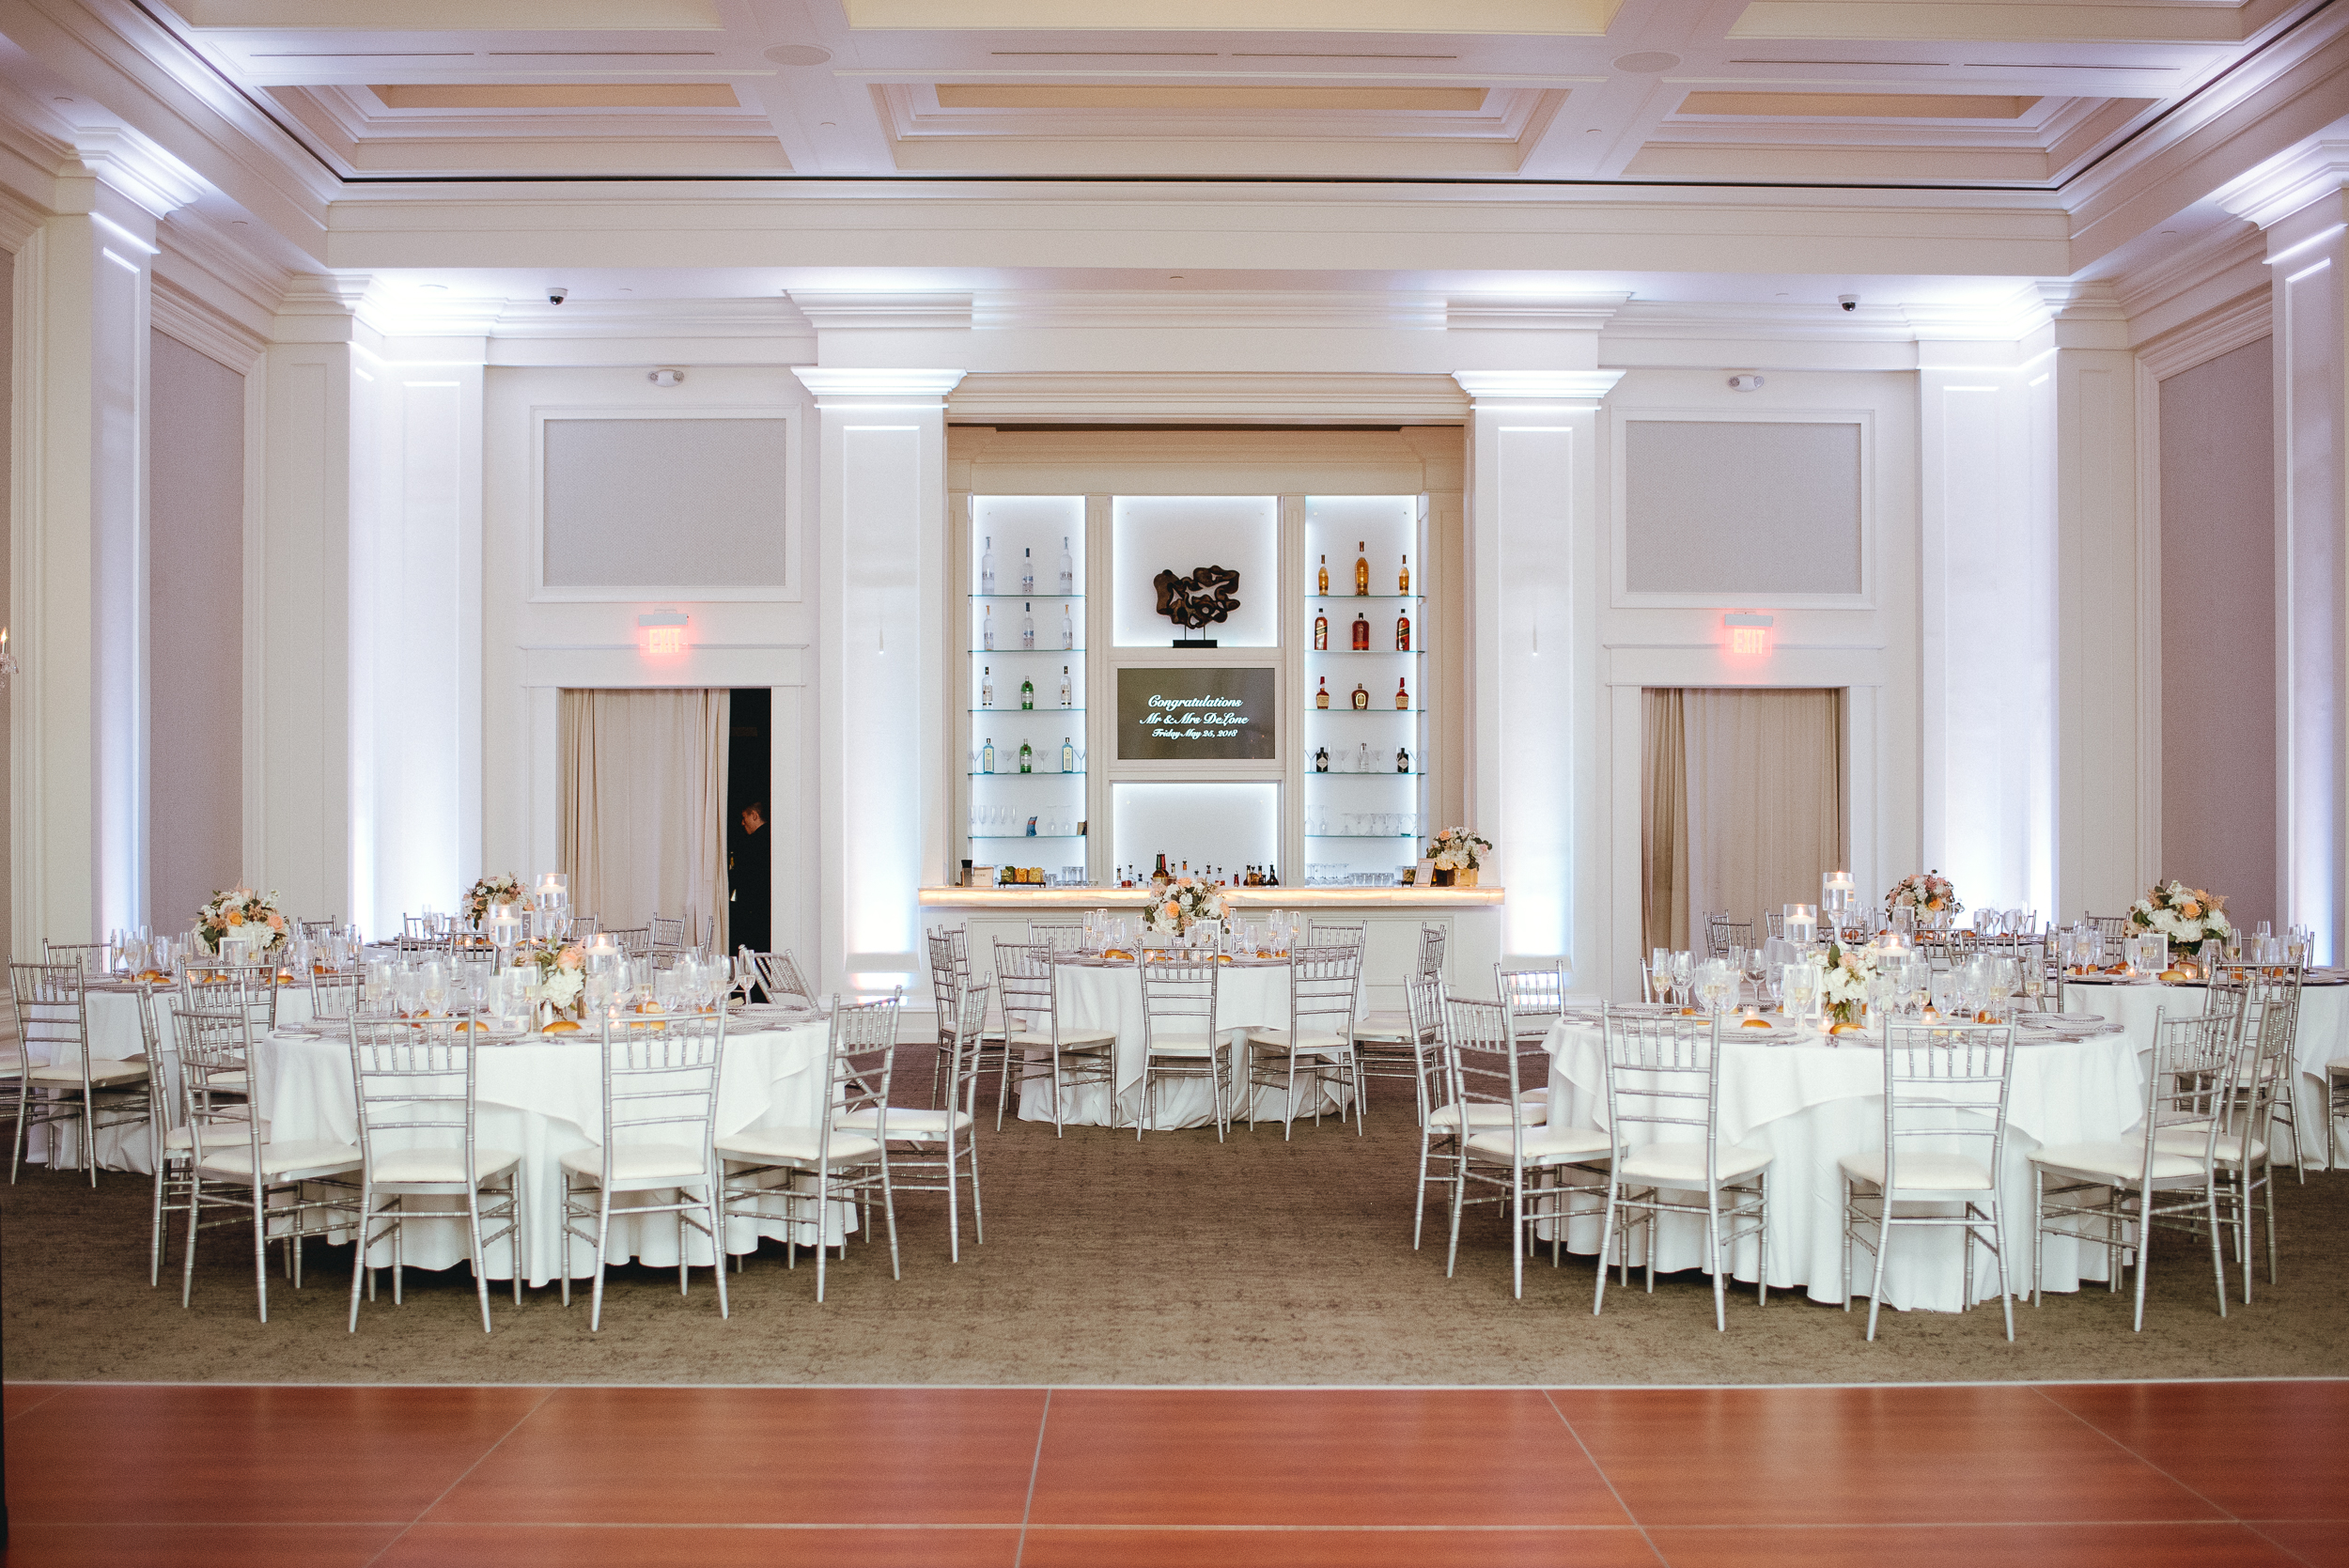 Philadelphia-PA-wedding-Photographer-the-ballroom-at-ellis-preserve-Malvern-prep-peaberry-photography-65.jpg